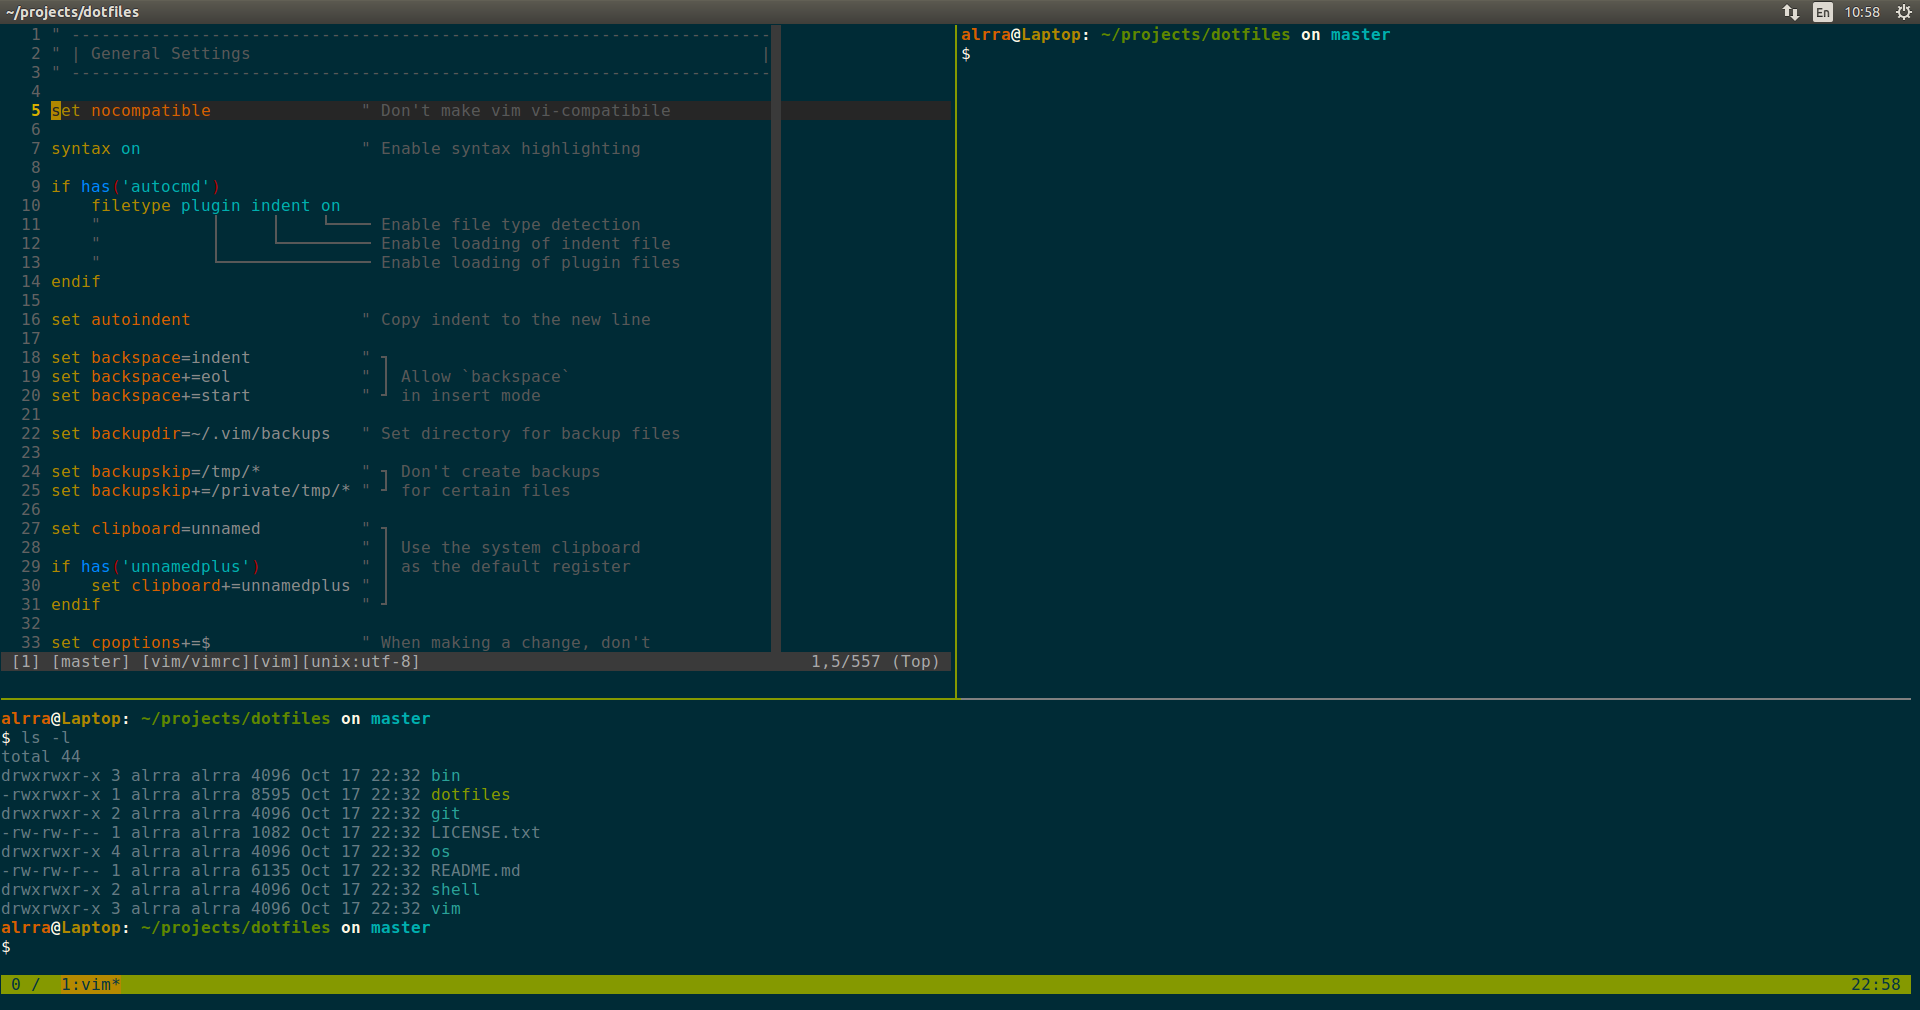 tmux and vim on Ubuntu